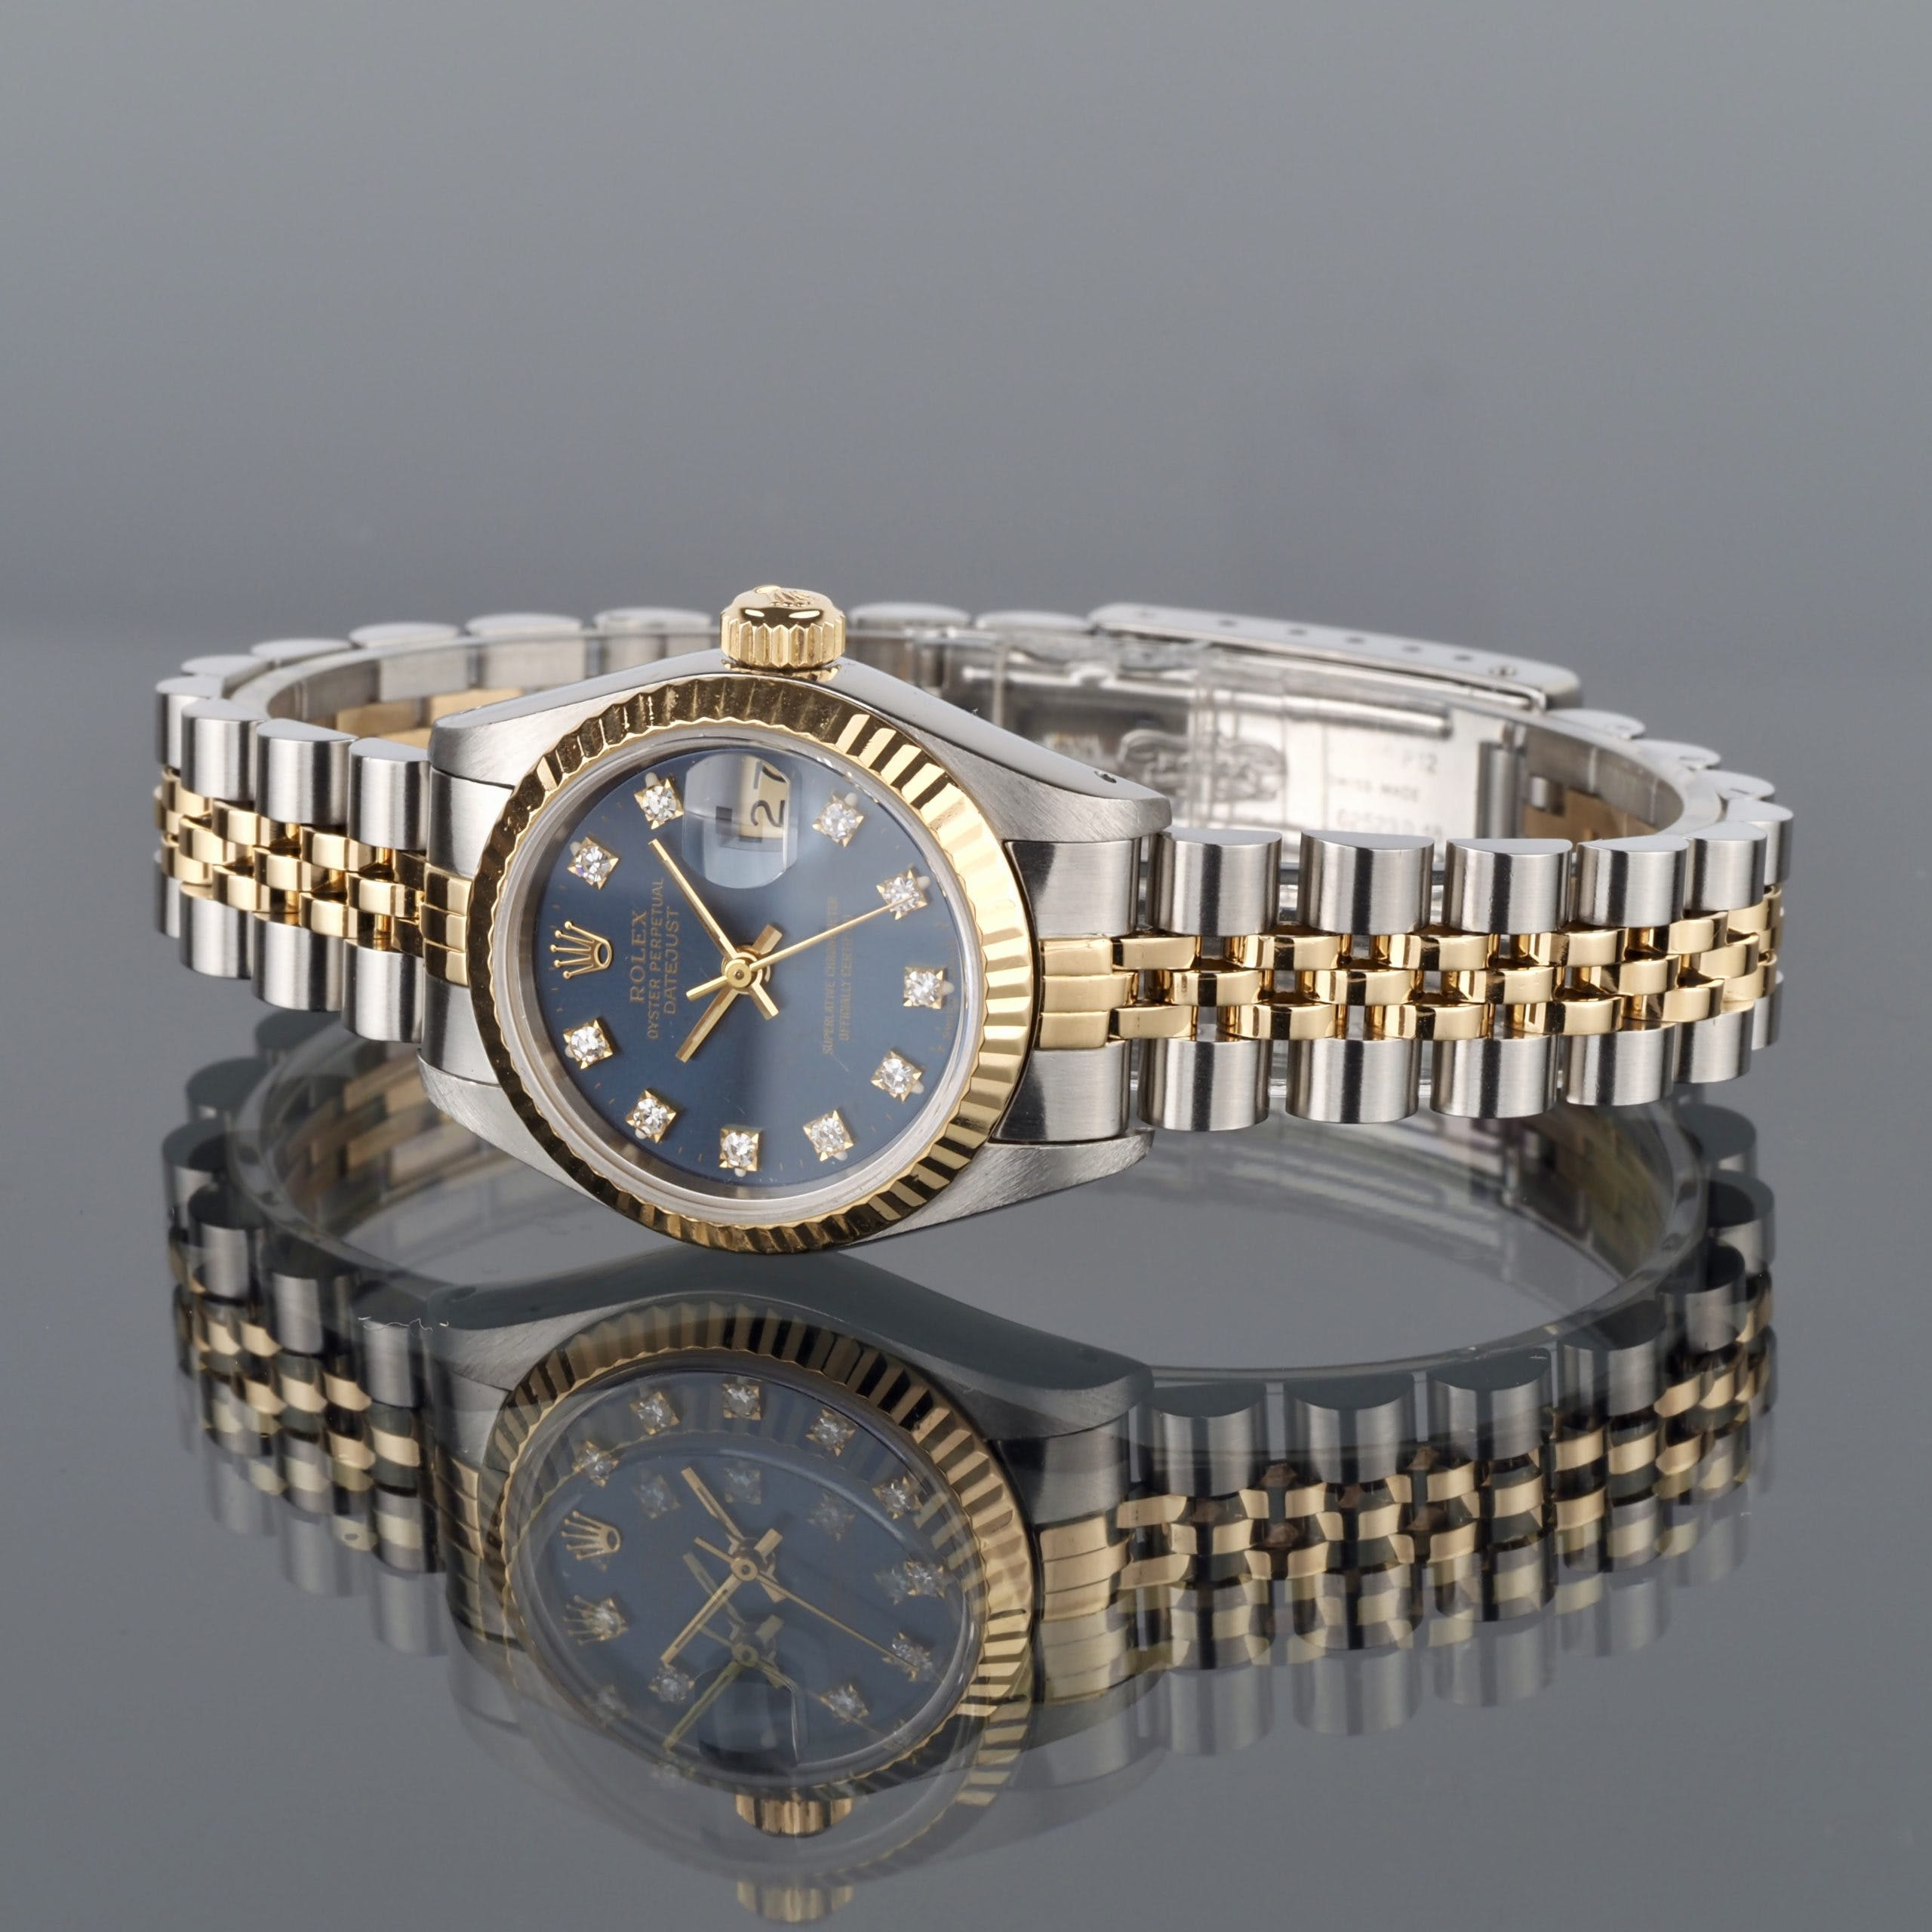 Rolex Lady-Datejust Ref. 69173